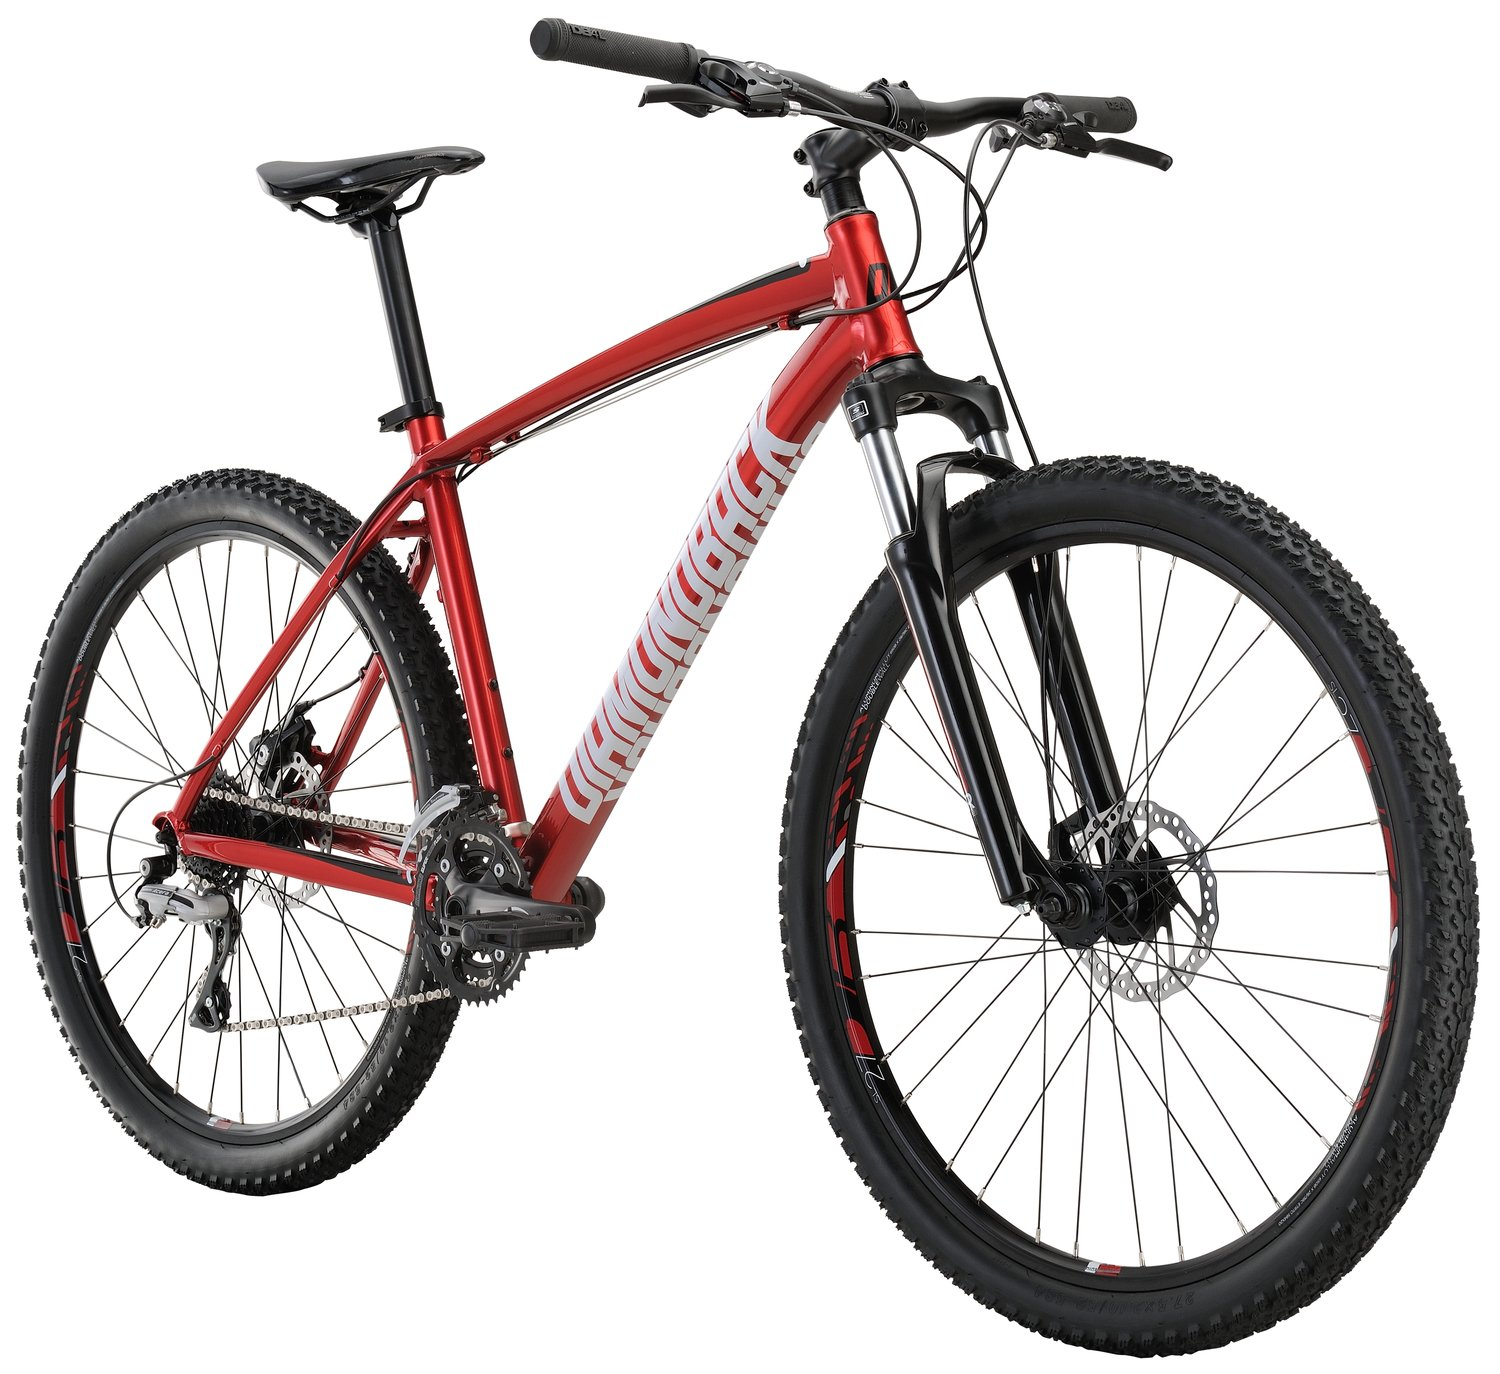 66997f8315e Diamondback Bicycles Overdrive Hardtail Mountain Bike with 27.5